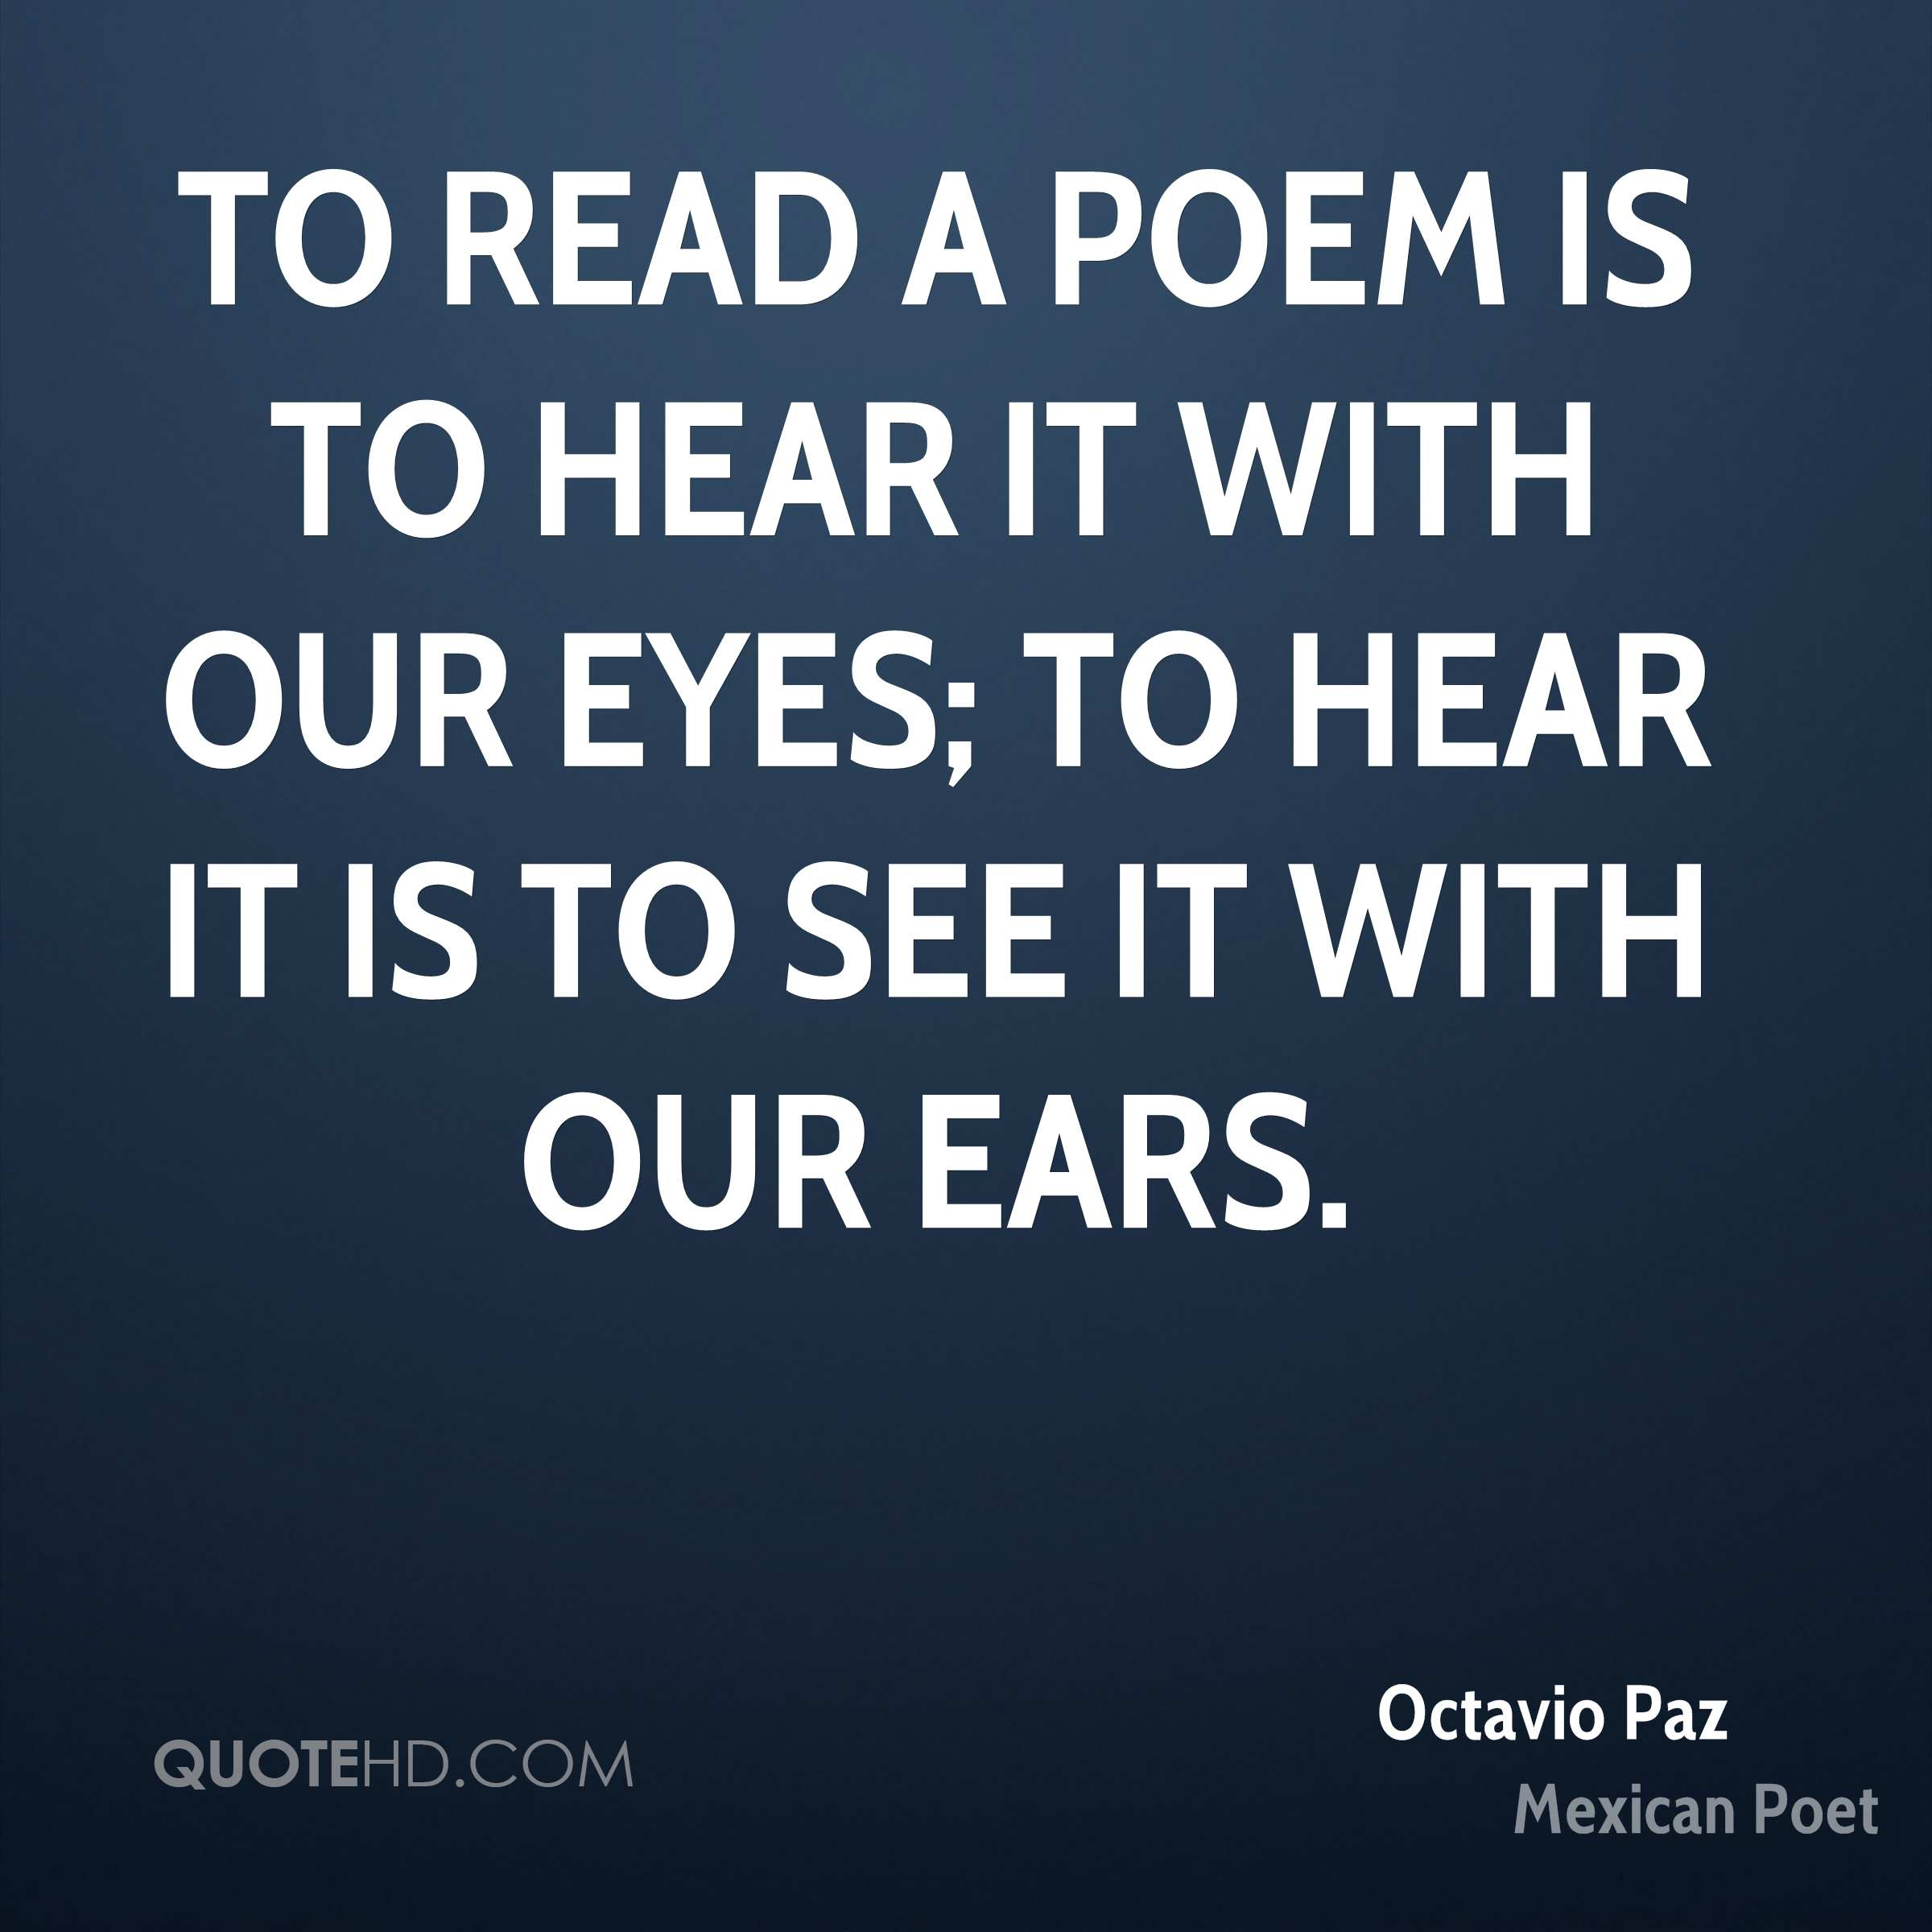 Poem Quotes: Octavio Paz Poetry Quotes